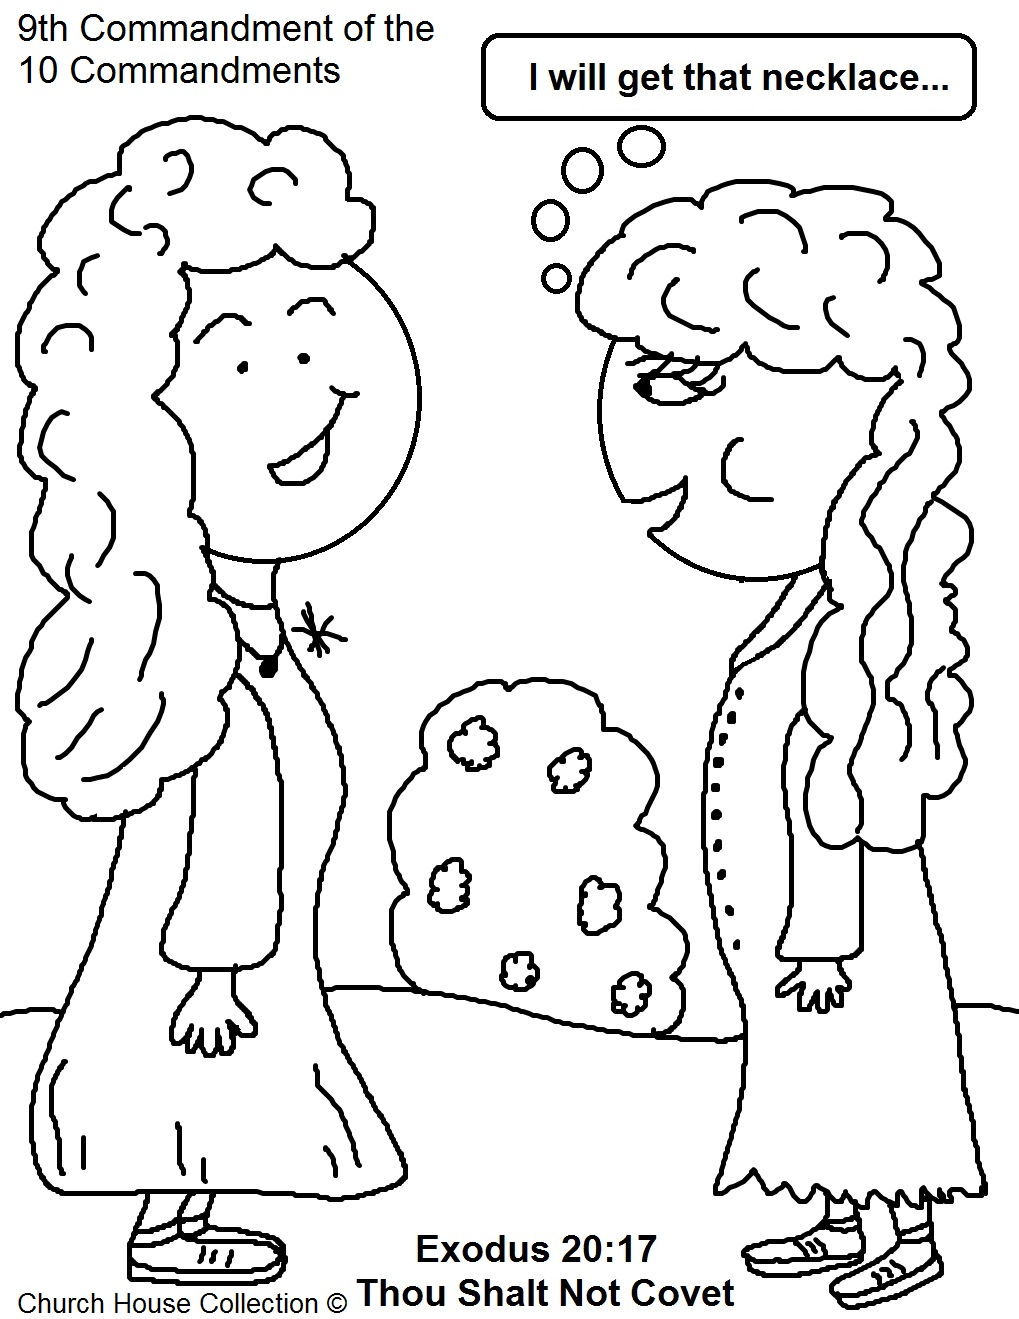 3rd commandment coloring pages